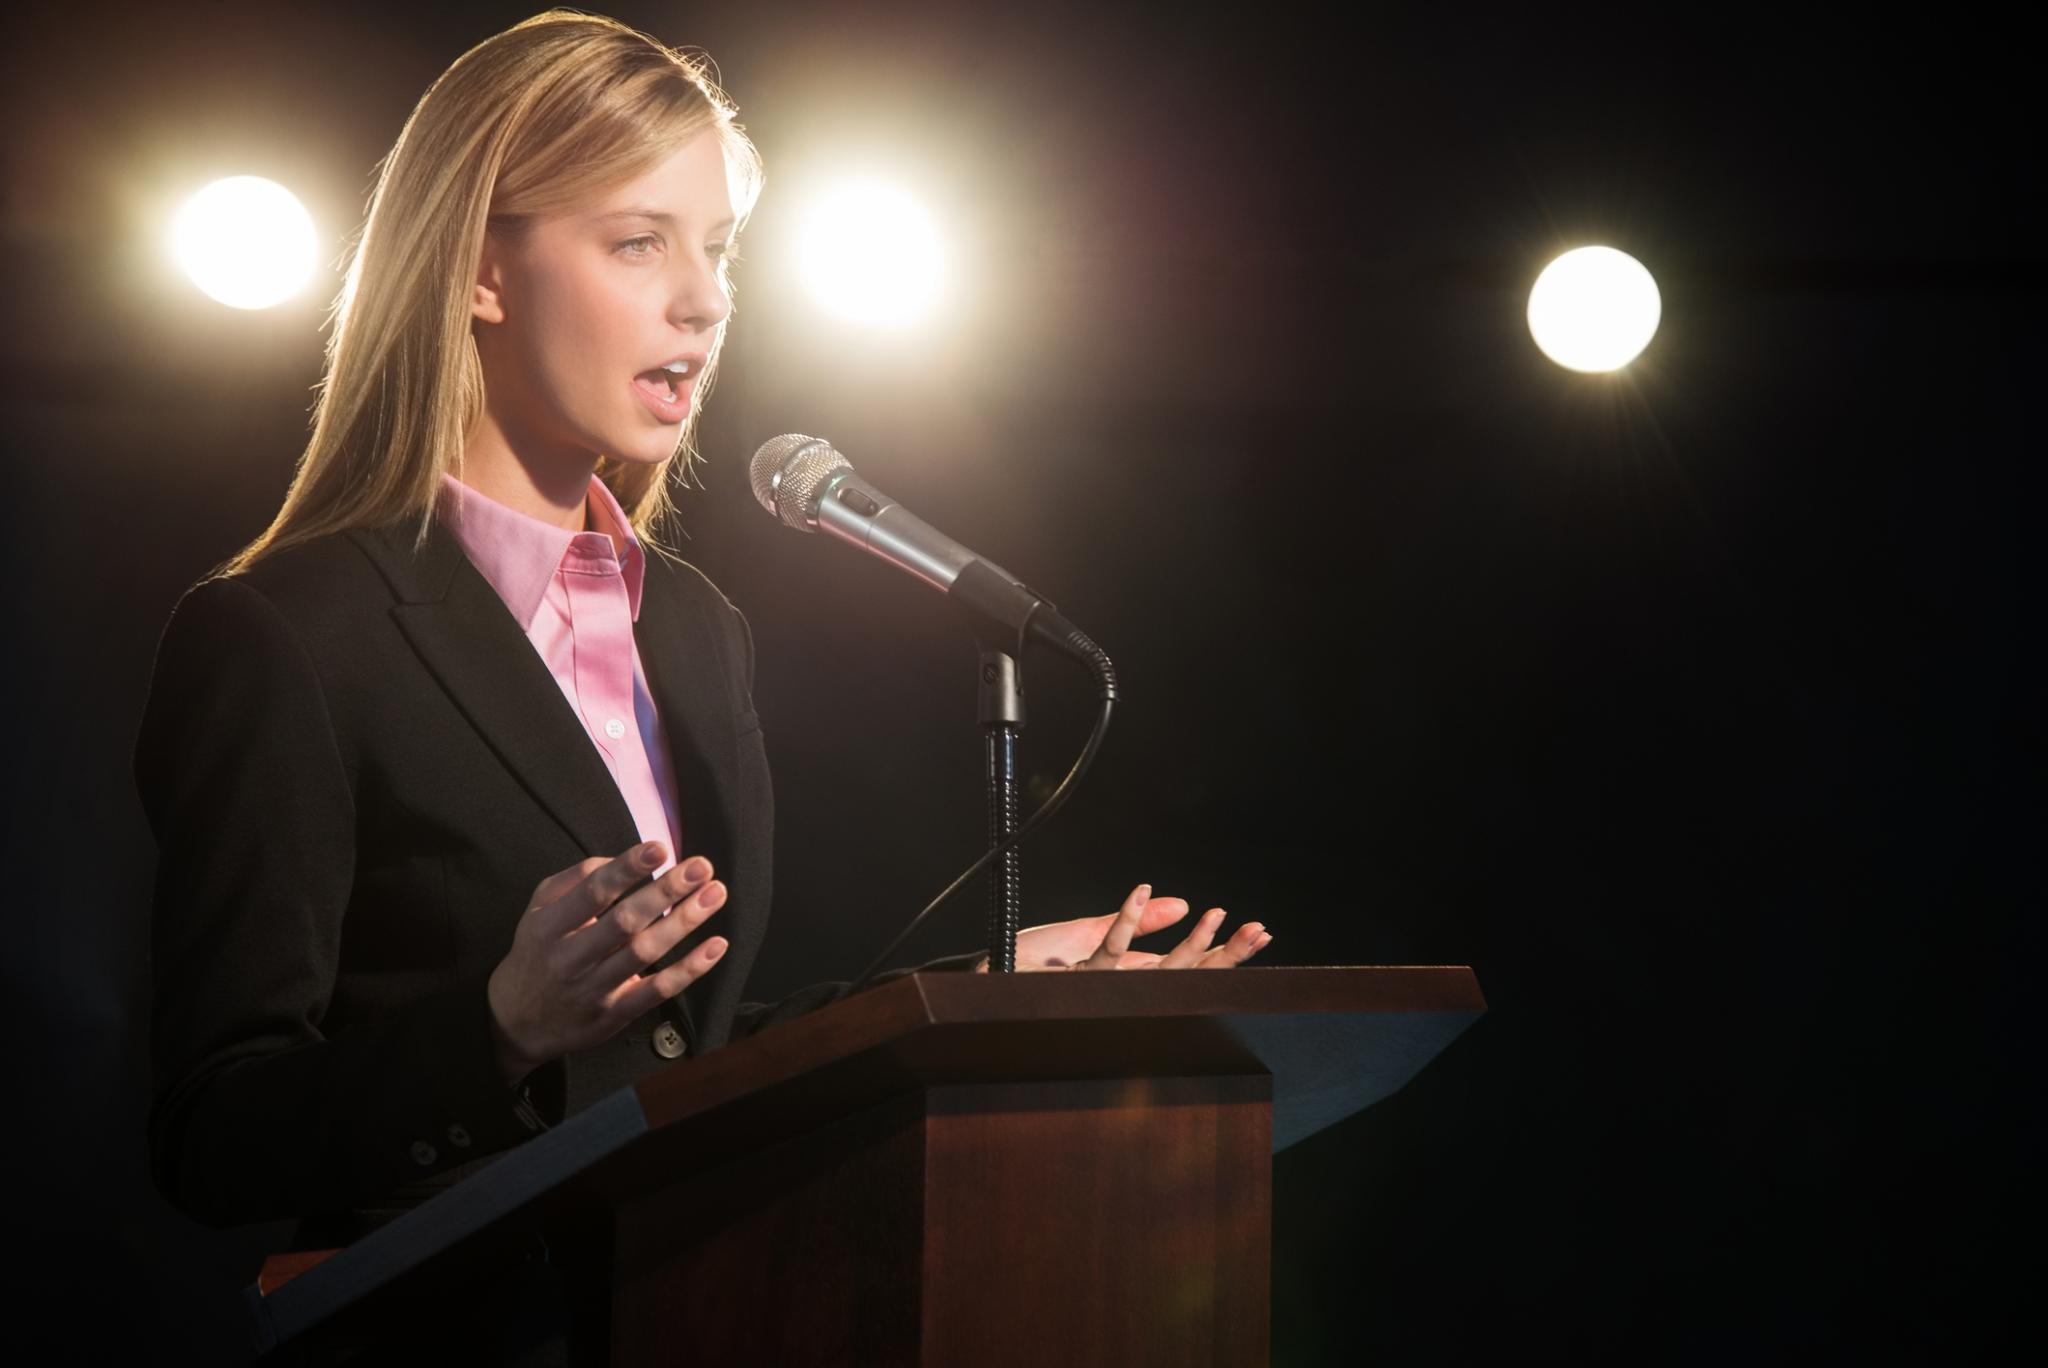 Lady speaking at a conference